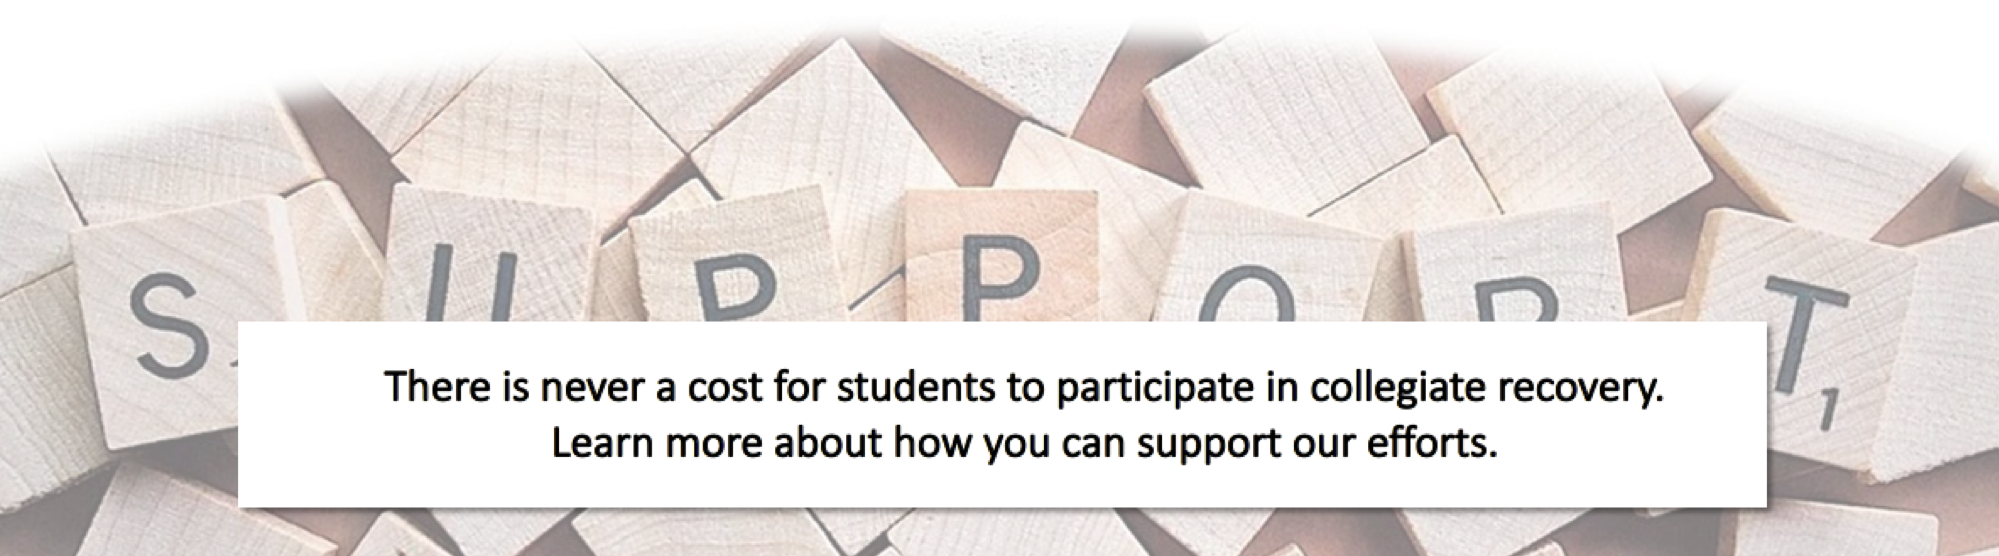 There is never a cost for students to participate in collegiate recovery.  Learn more about how you can support our efforts.